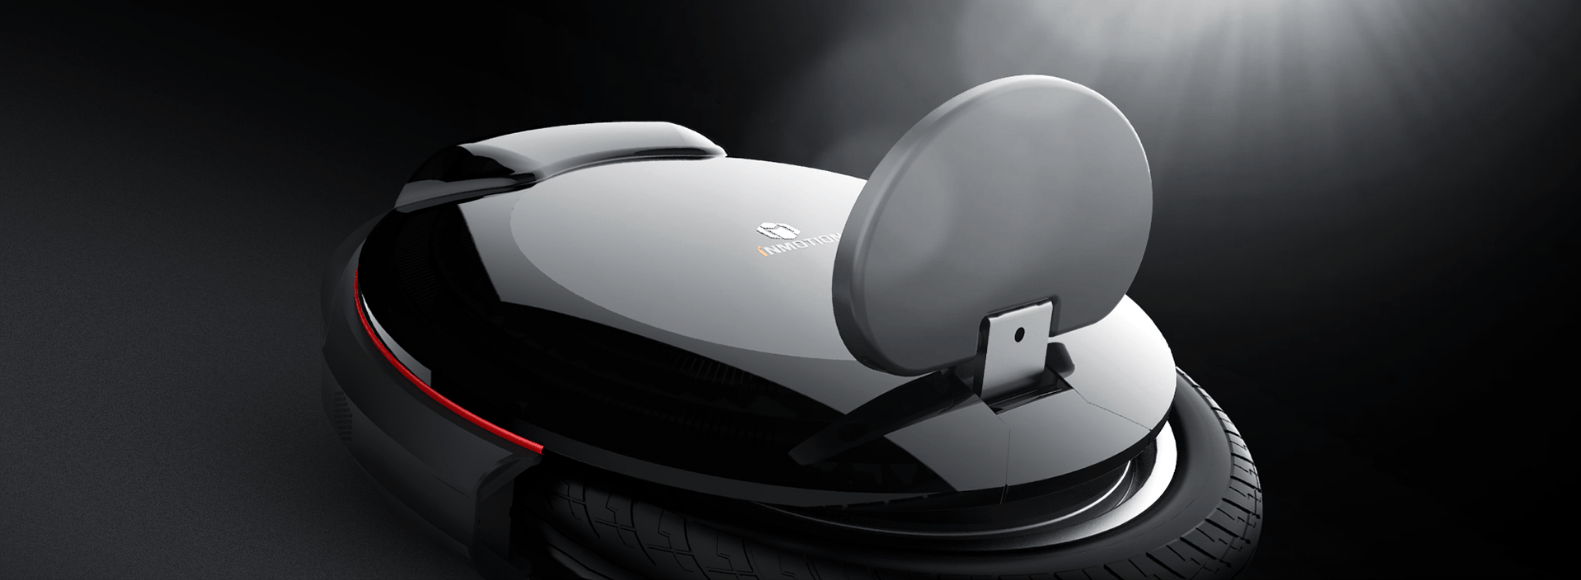 Inmotion V5 Electric Unicycle